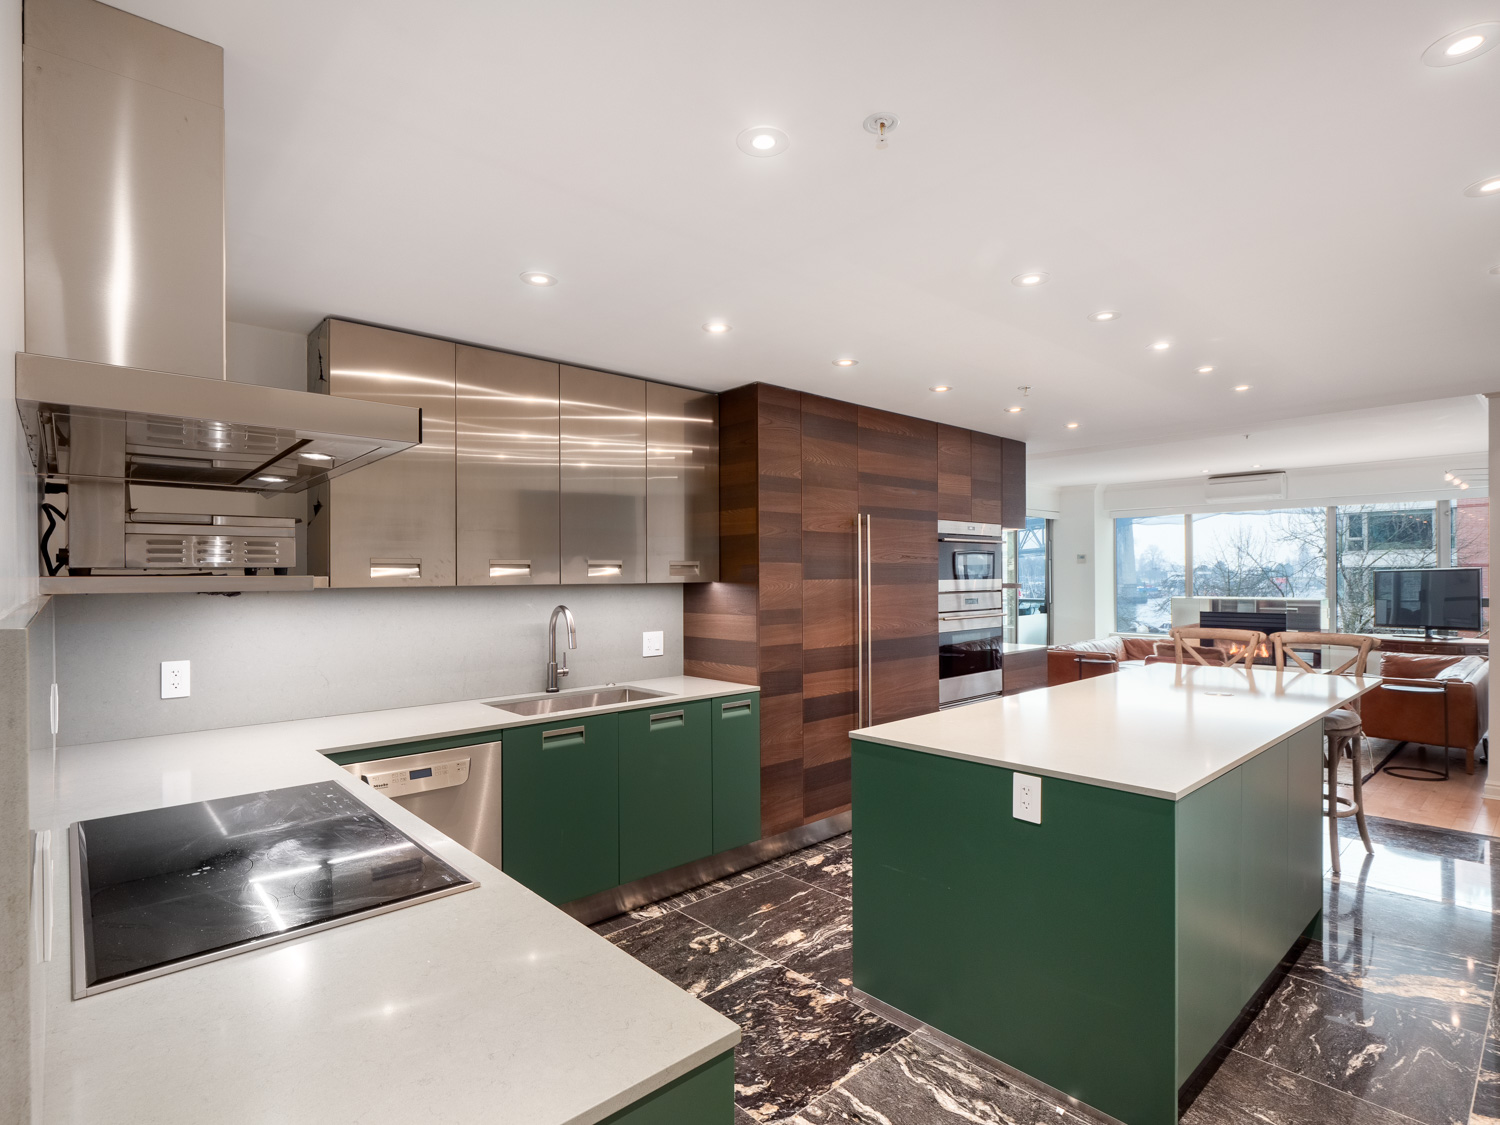 Arclinea Kitchen - Modern Vancouver Condo  1600 hornby street web 3 a